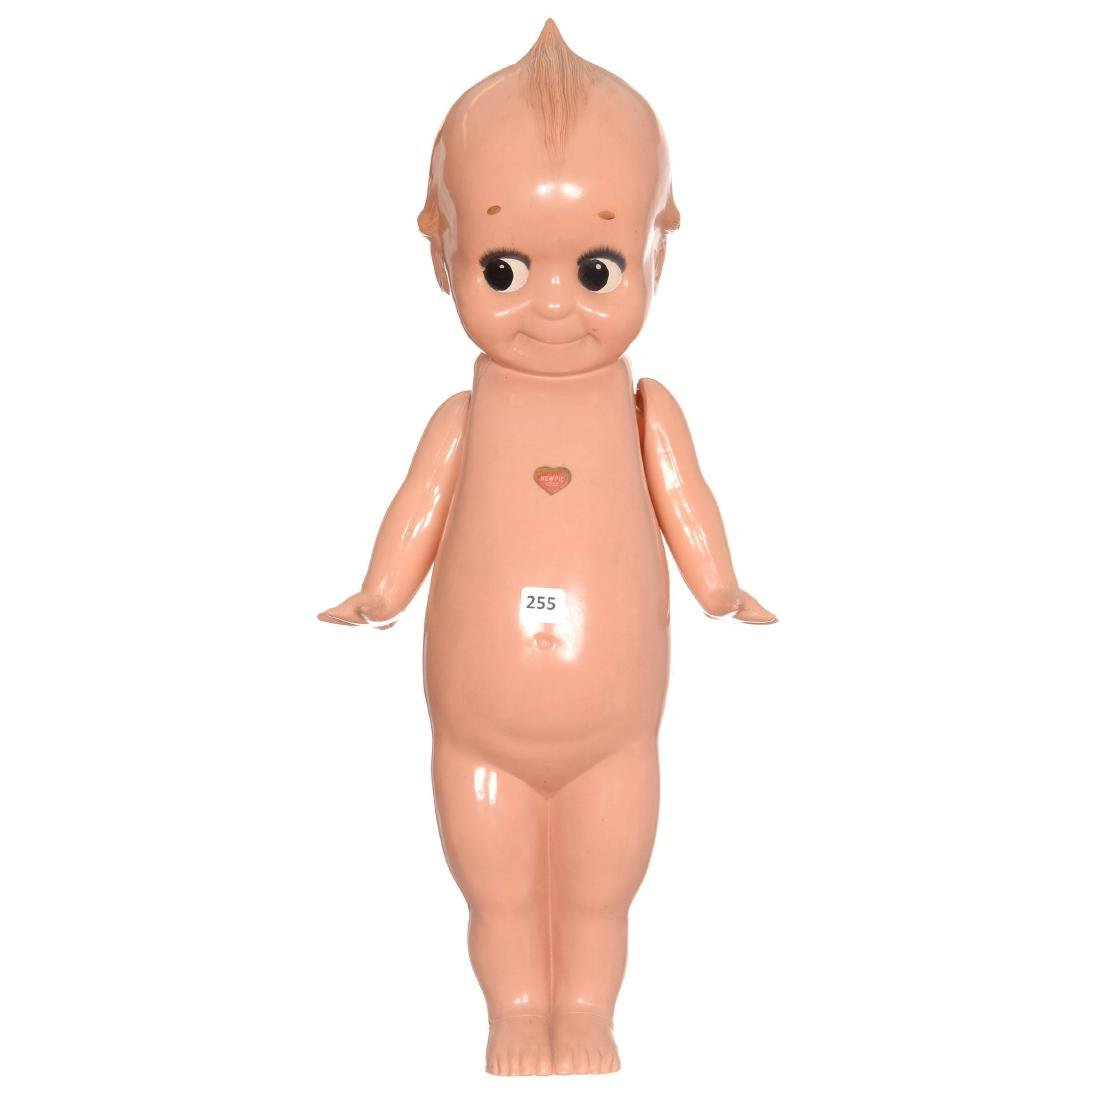 Counter Top Display Kewpie